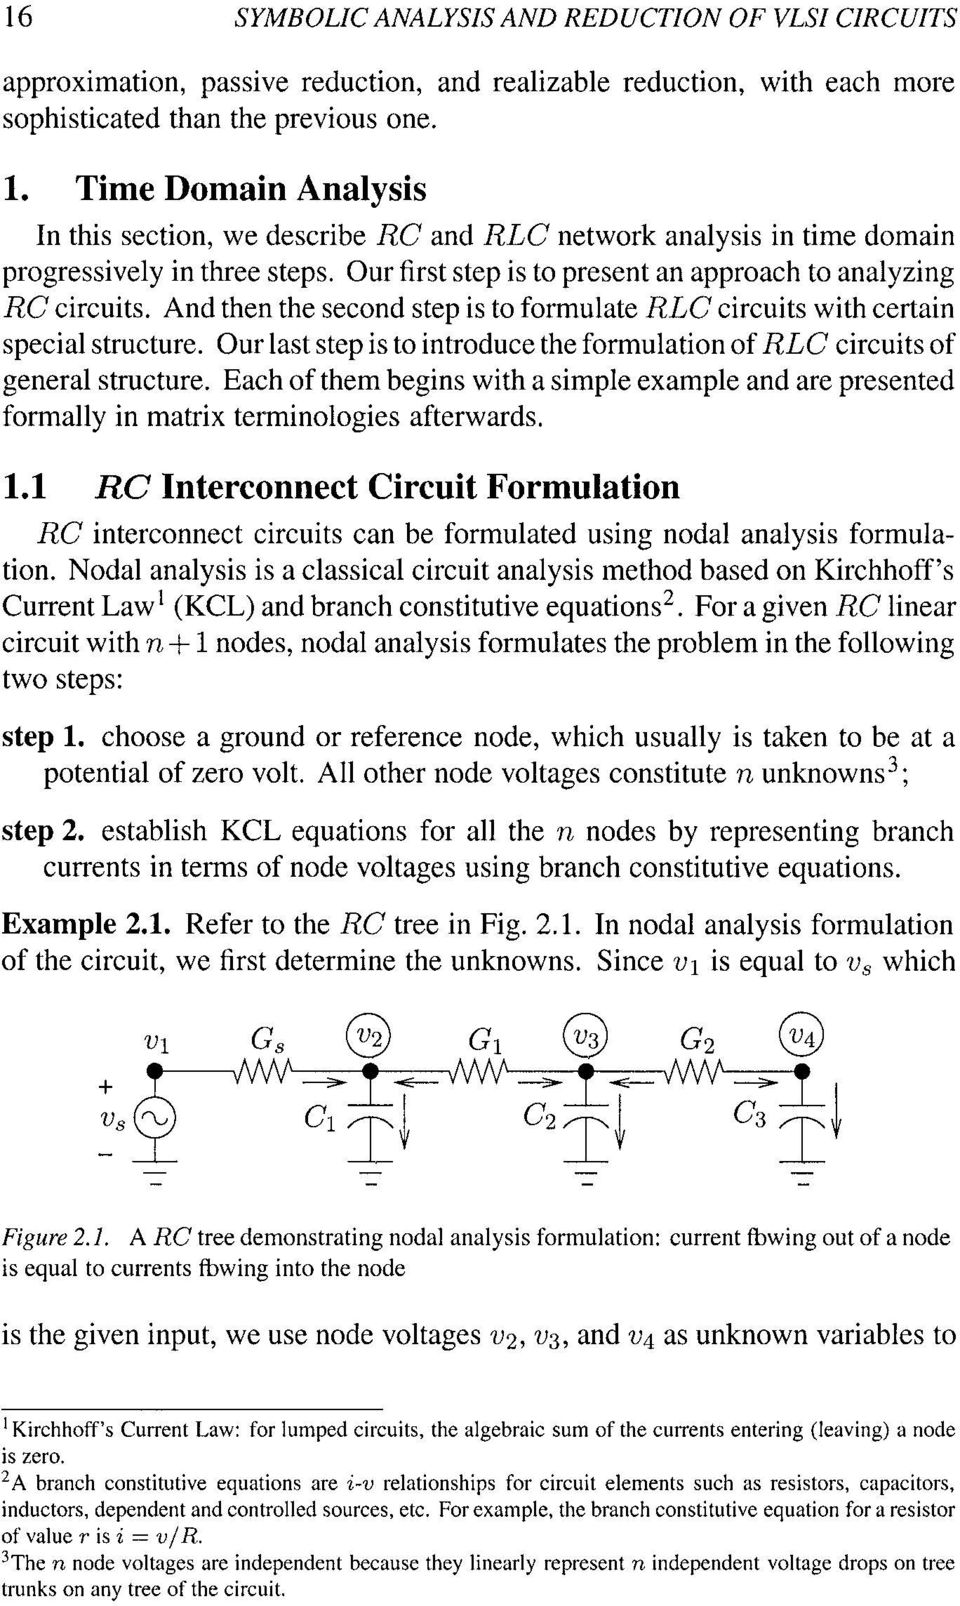 BASICS OF CIRCUIT ANALYSIS - PDF